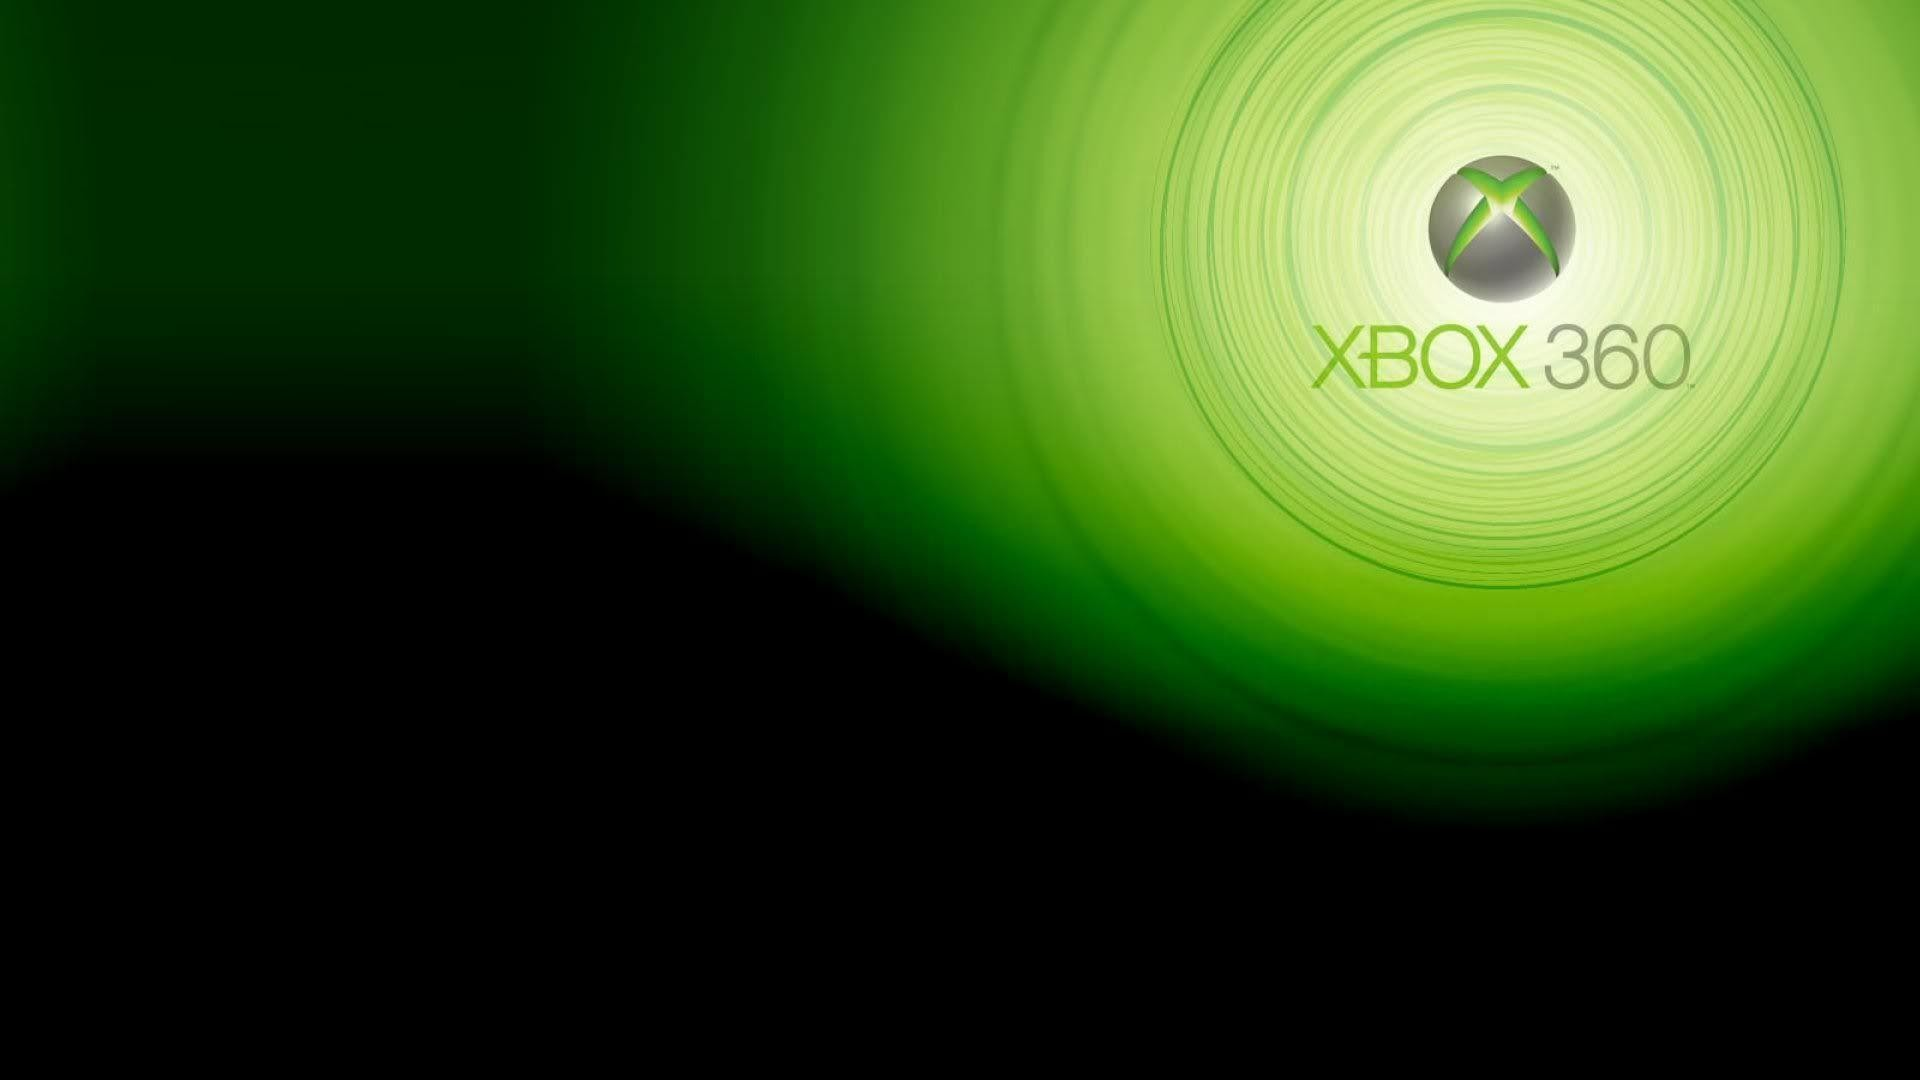 1920x1080 Cool Xbox Backgrounds - Wallpaper Cave